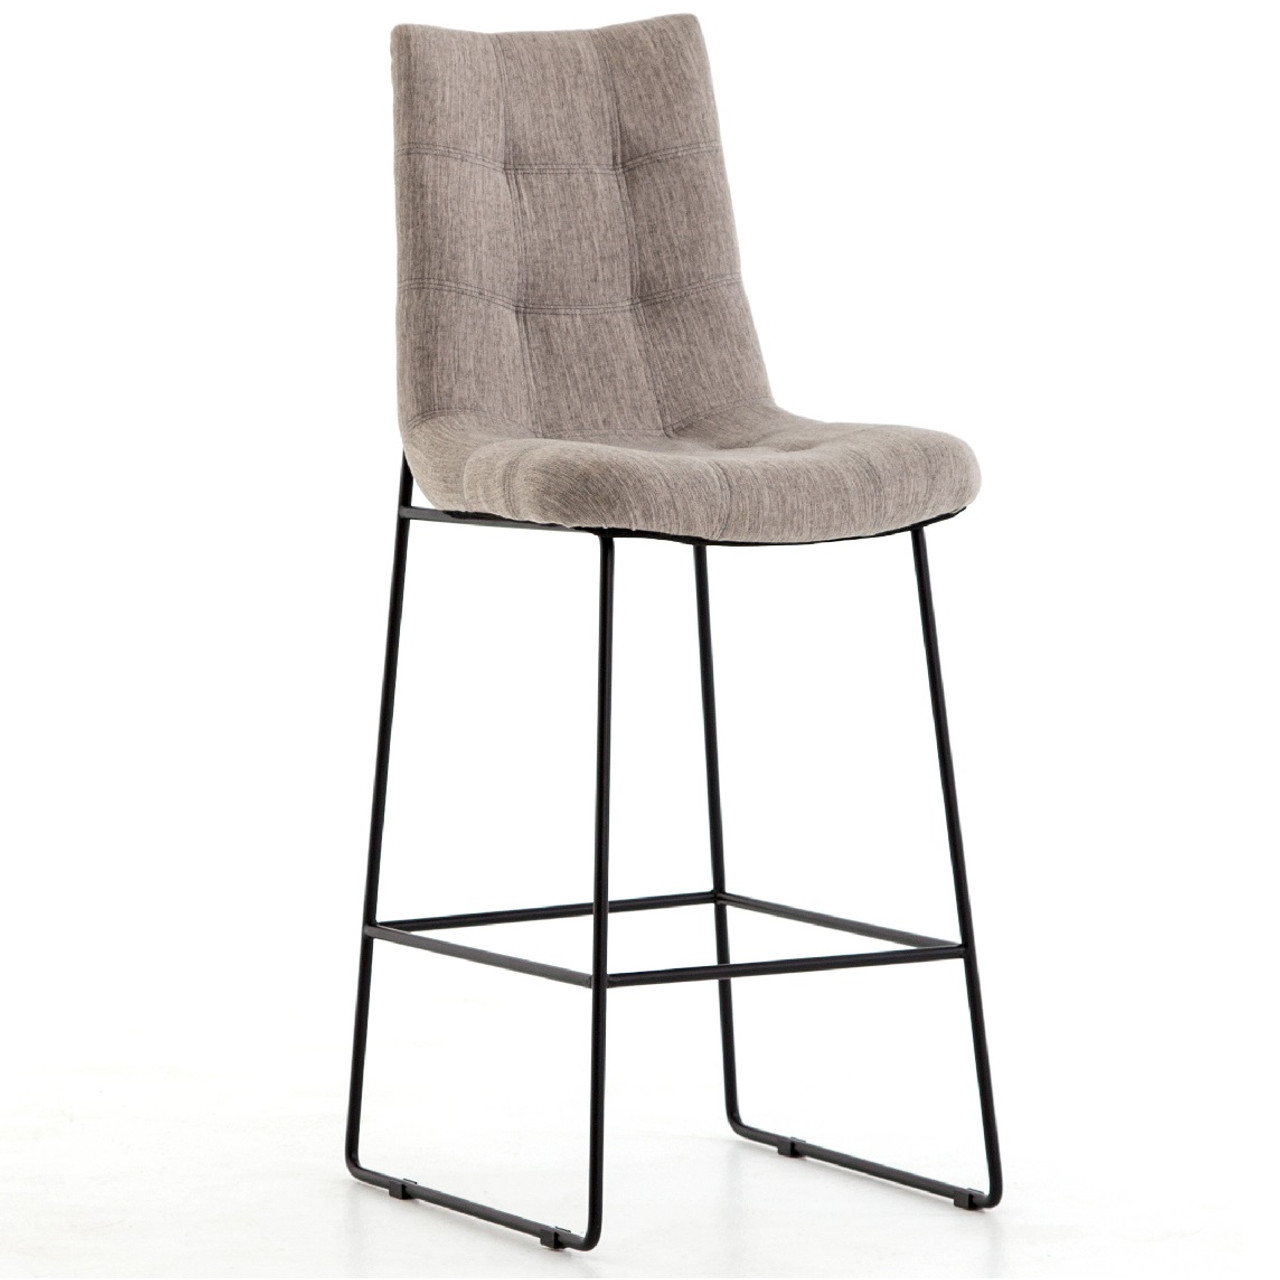 Camile Black Iron Leg Bar Stool Savile Flannel Zin Home